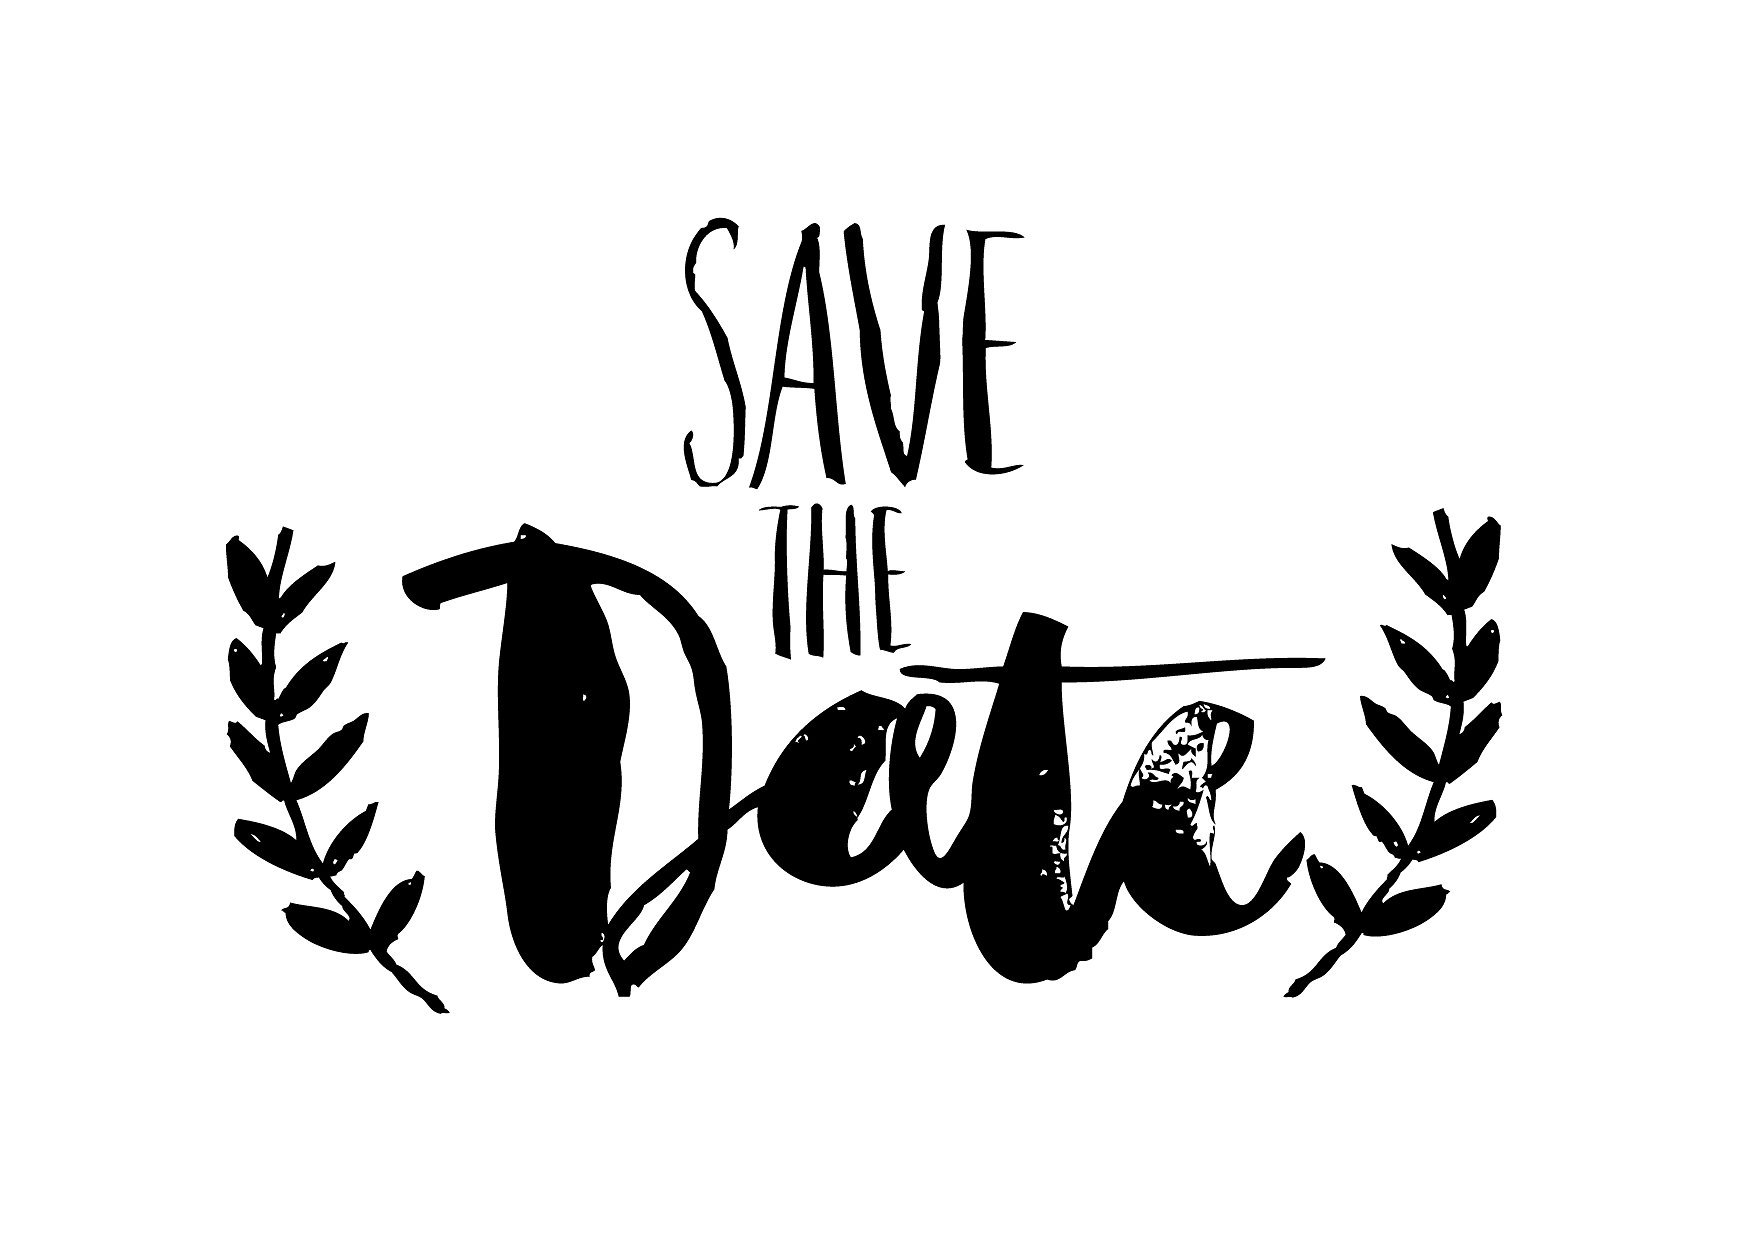 Save The Date Png Black And White Hdpng.com 1754 - Save The Date Black And White, Transparent background PNG HD thumbnail